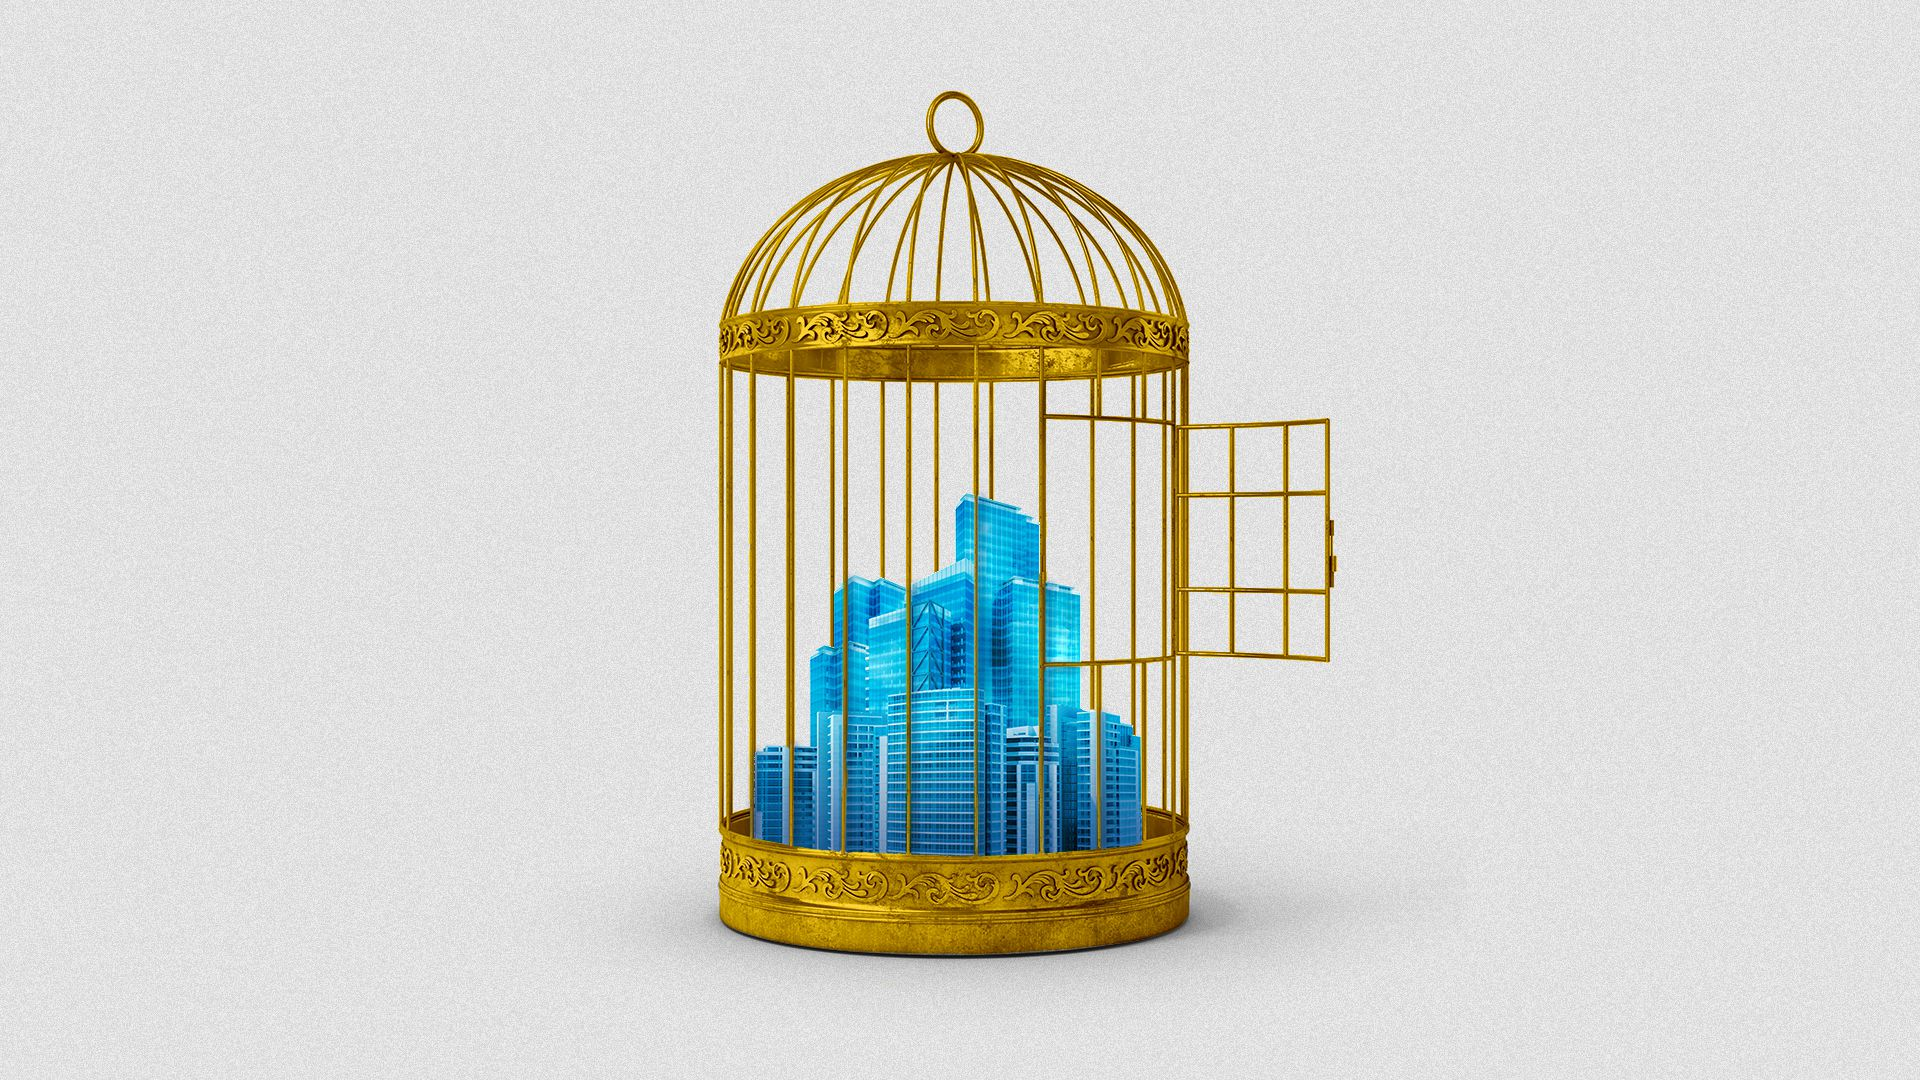 Illustration of a city inside of an opened bird cage.